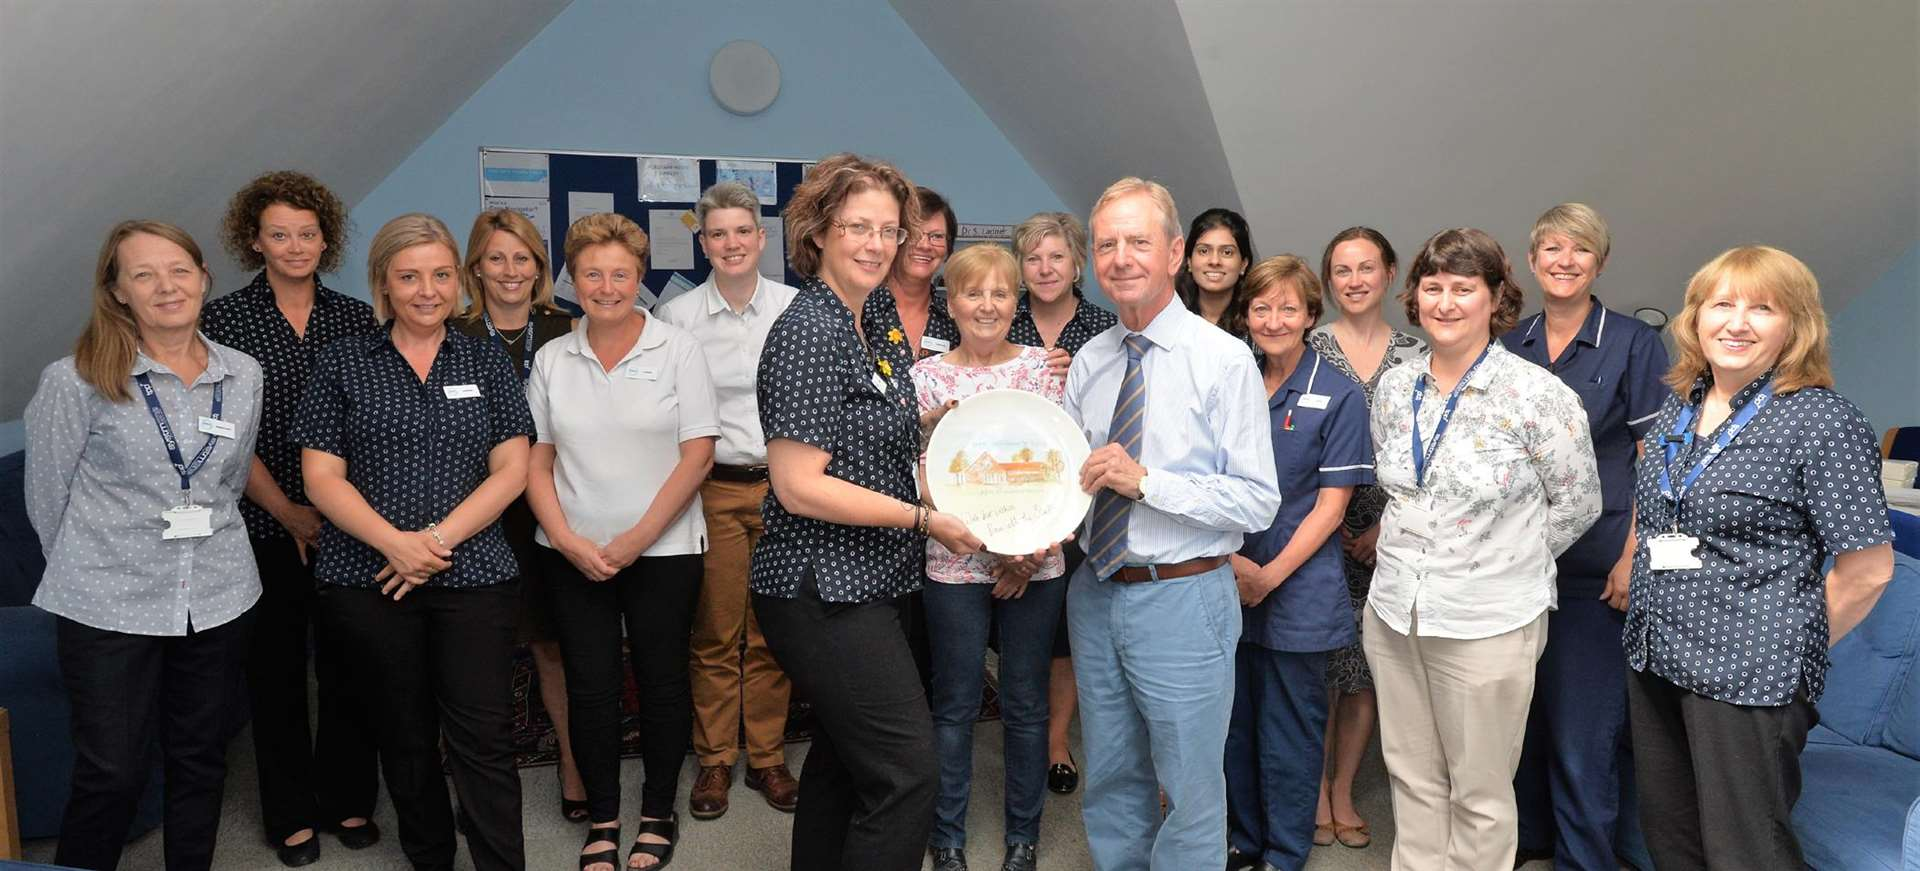 Colleagues at Newmarket's Orchard House surgery present Dr Bailey with a hand painted plate to mark his retirement